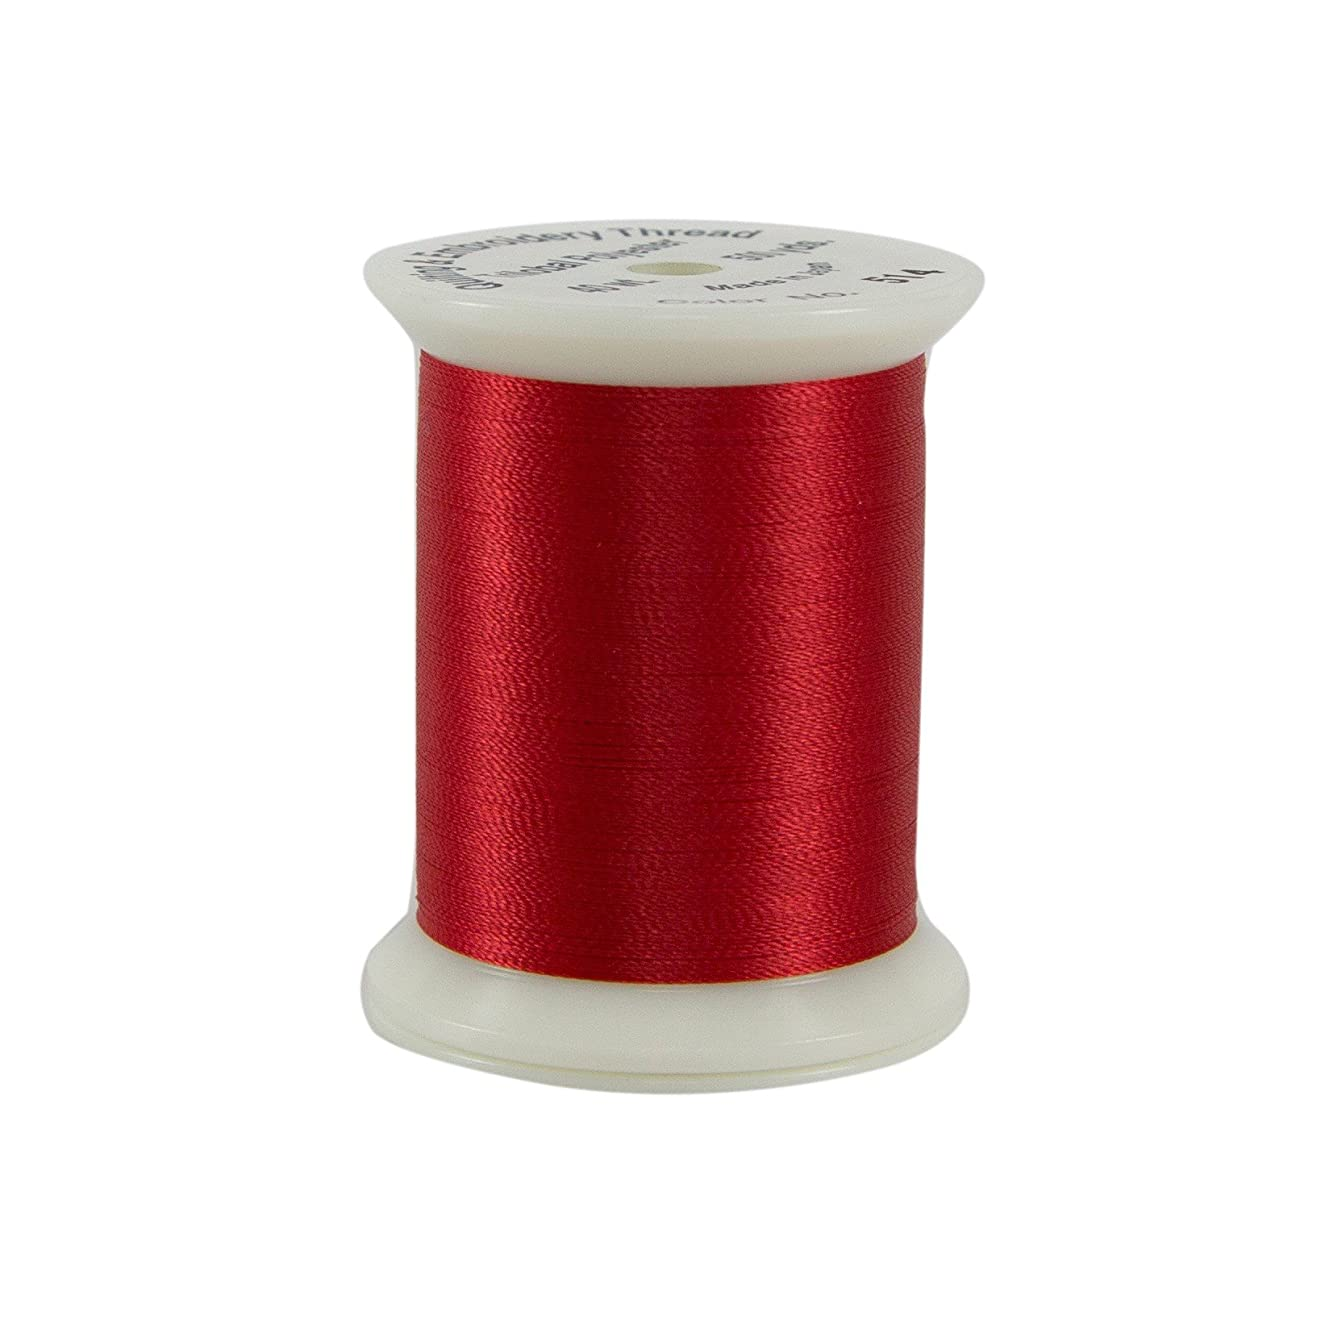 Superior Threads 11501-514 Living Colors Scarlet Thread, 500 yd